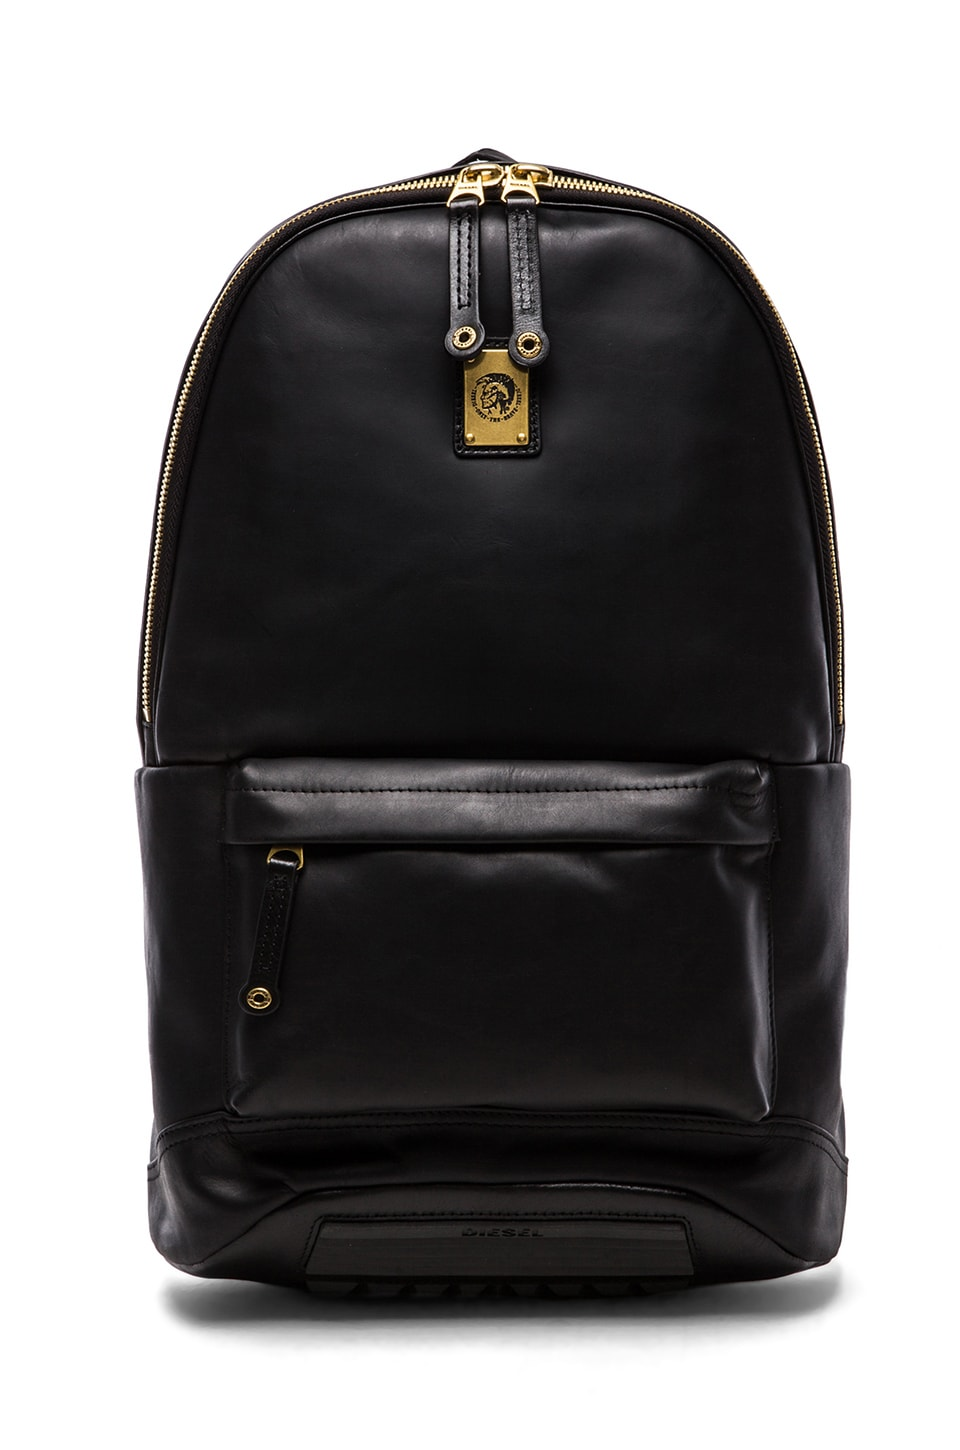 Diesel Rub & Rock Clubber Backpack in Black